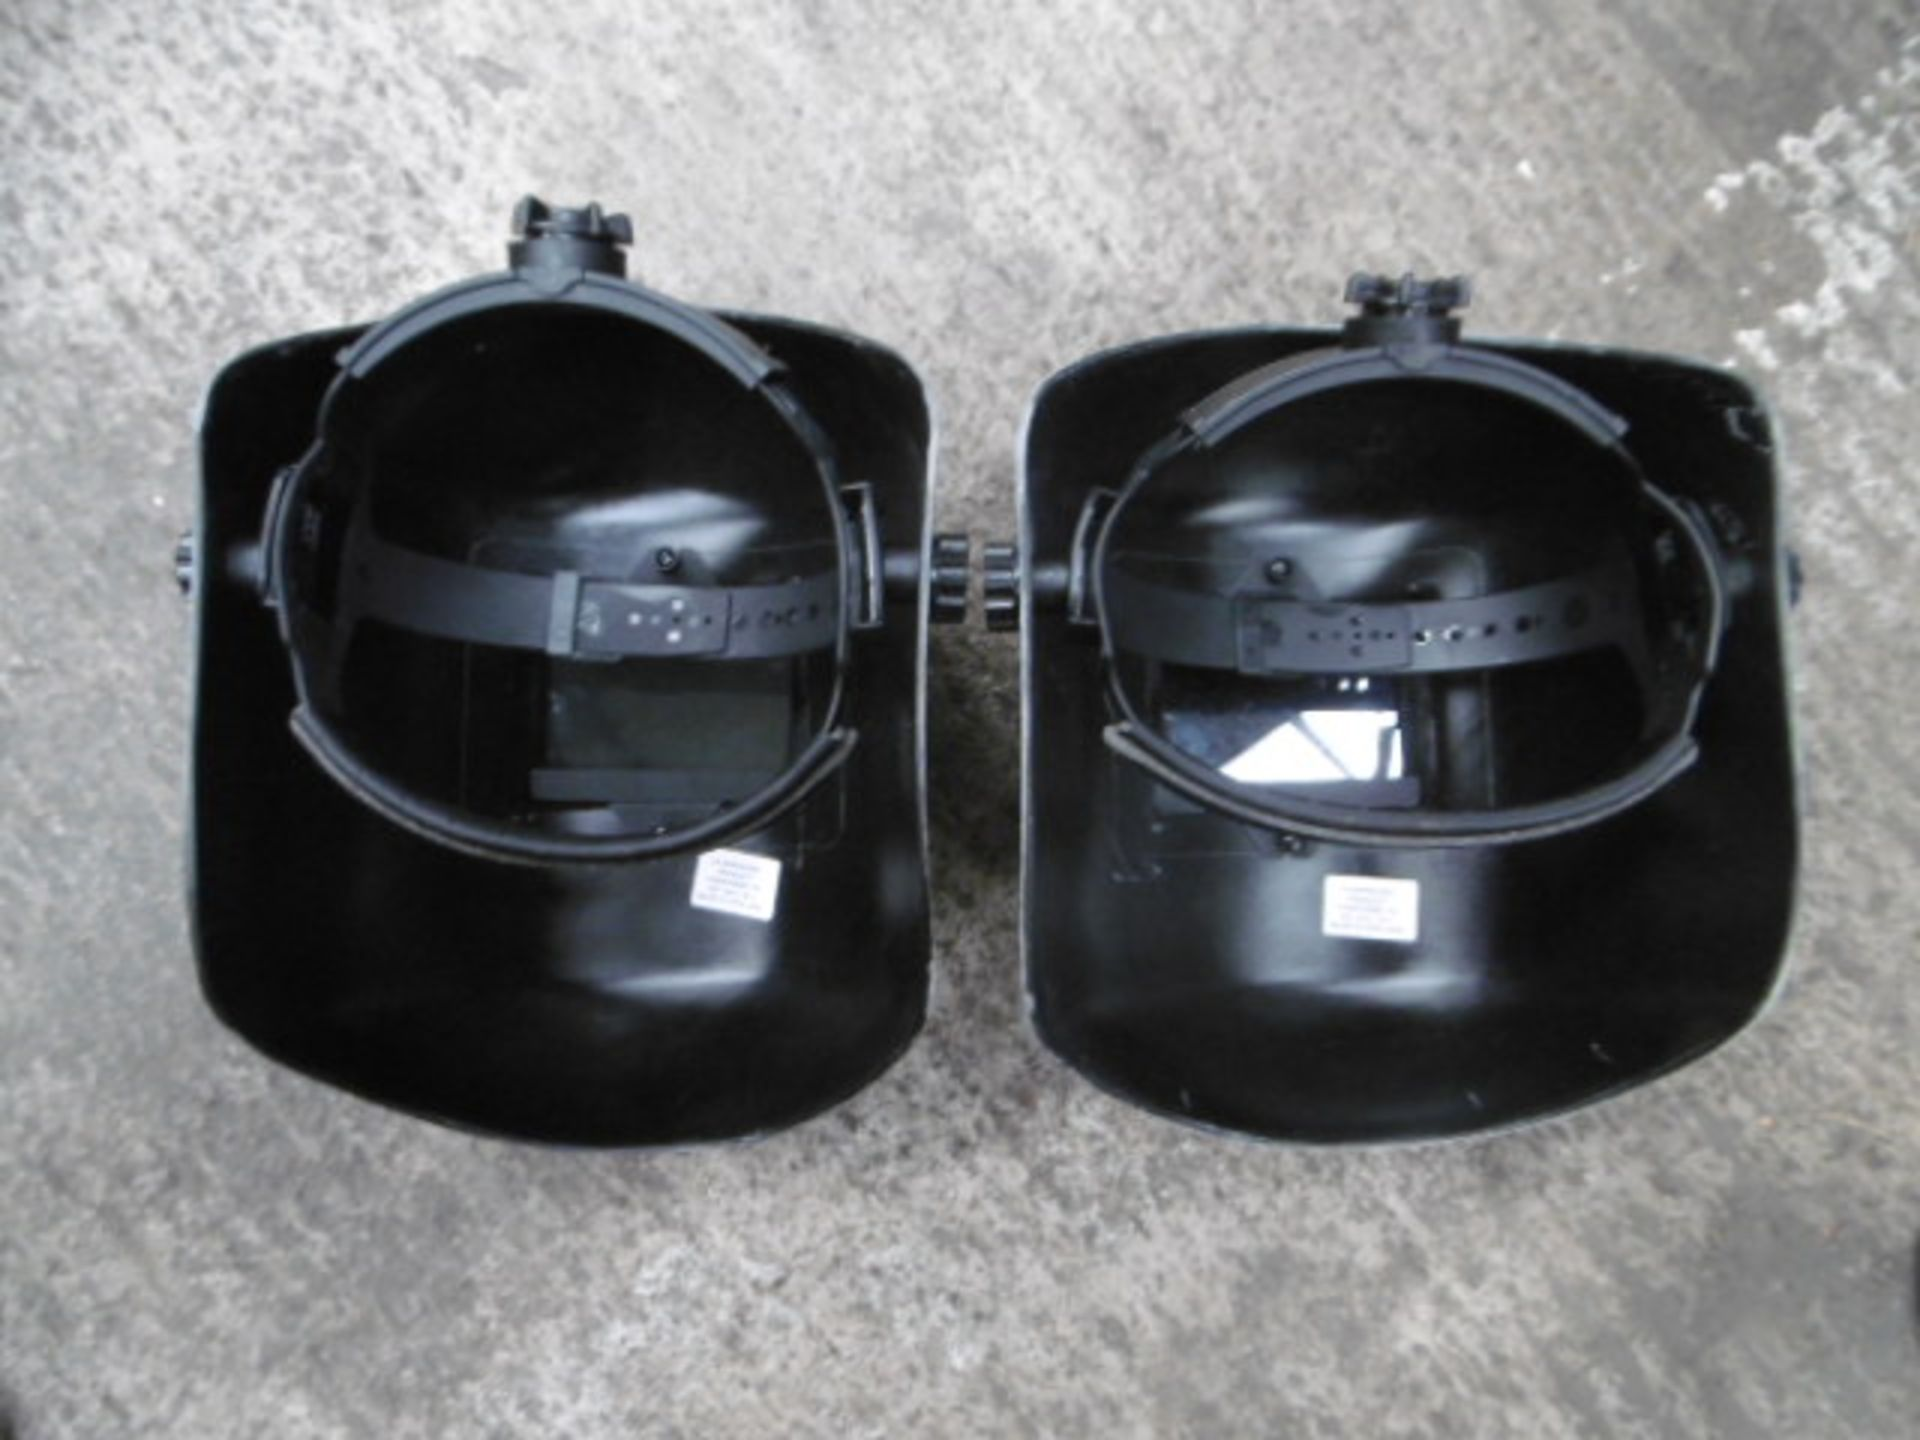 Lotto 1524 - 2 x Welding Masks and Safety Goggles